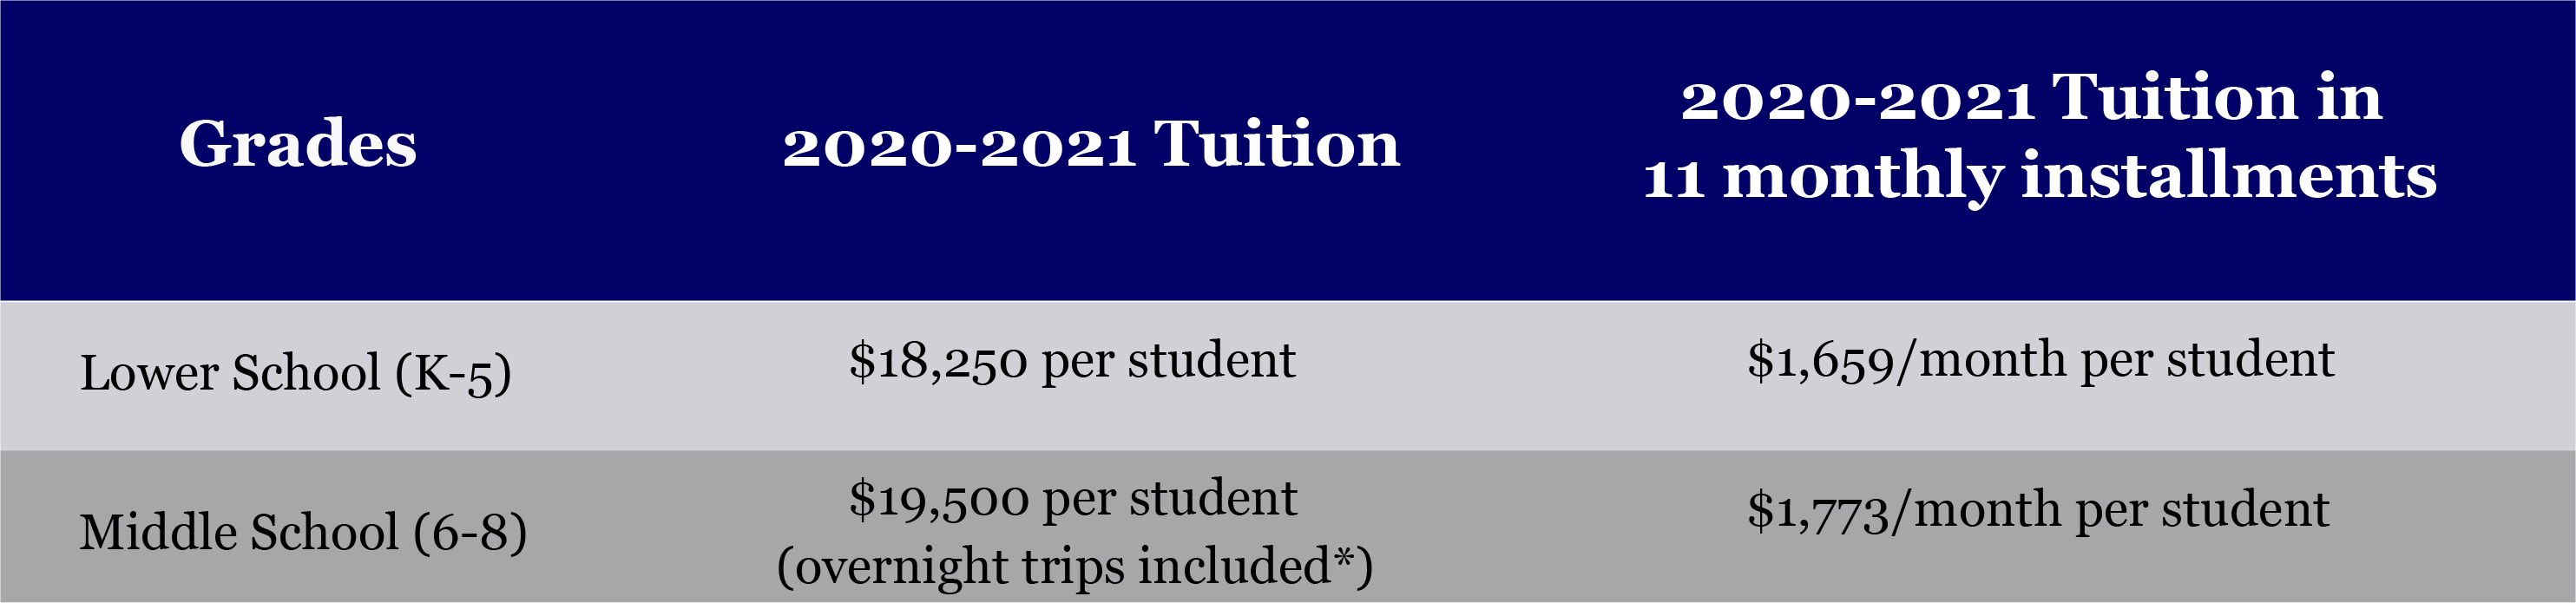 Lower School tuition $18,250 per student; Upper School tuition $19,500 per student